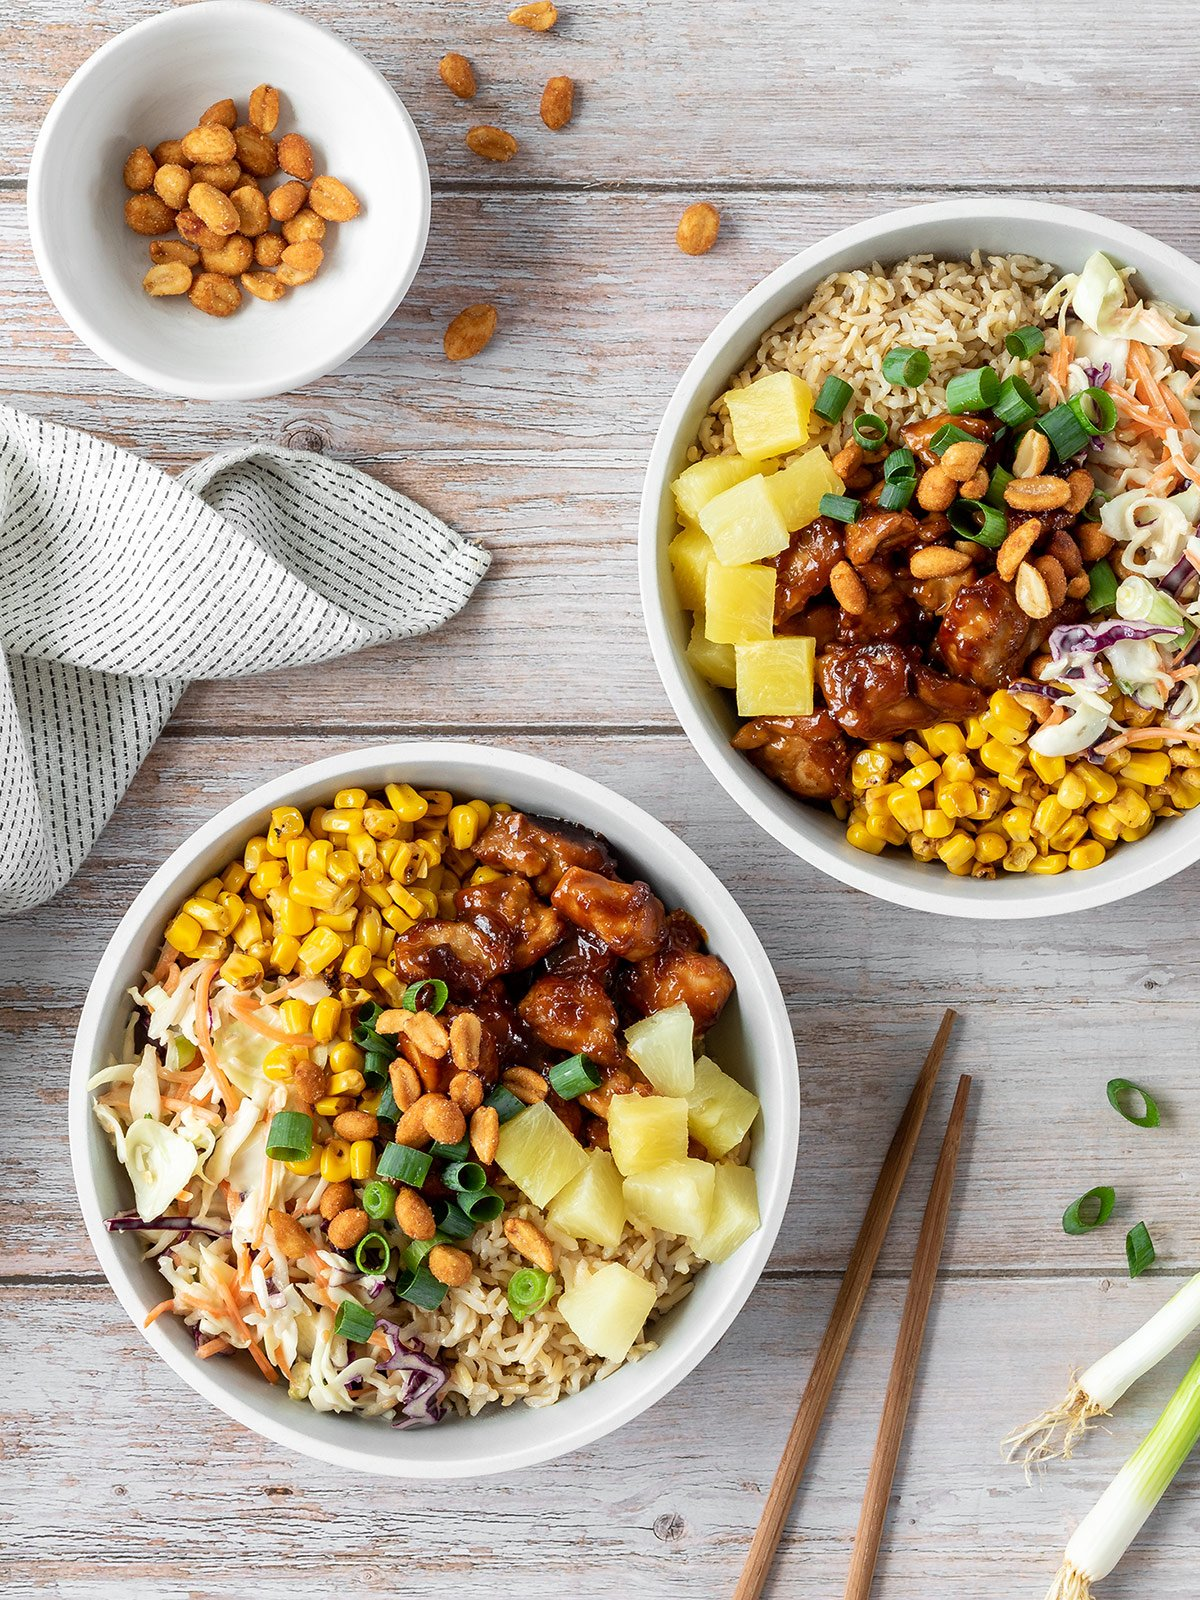 Chicken poke bowls with rice, Asian slaw, corn, pineapple, spring onions and honey roasted peanuts.